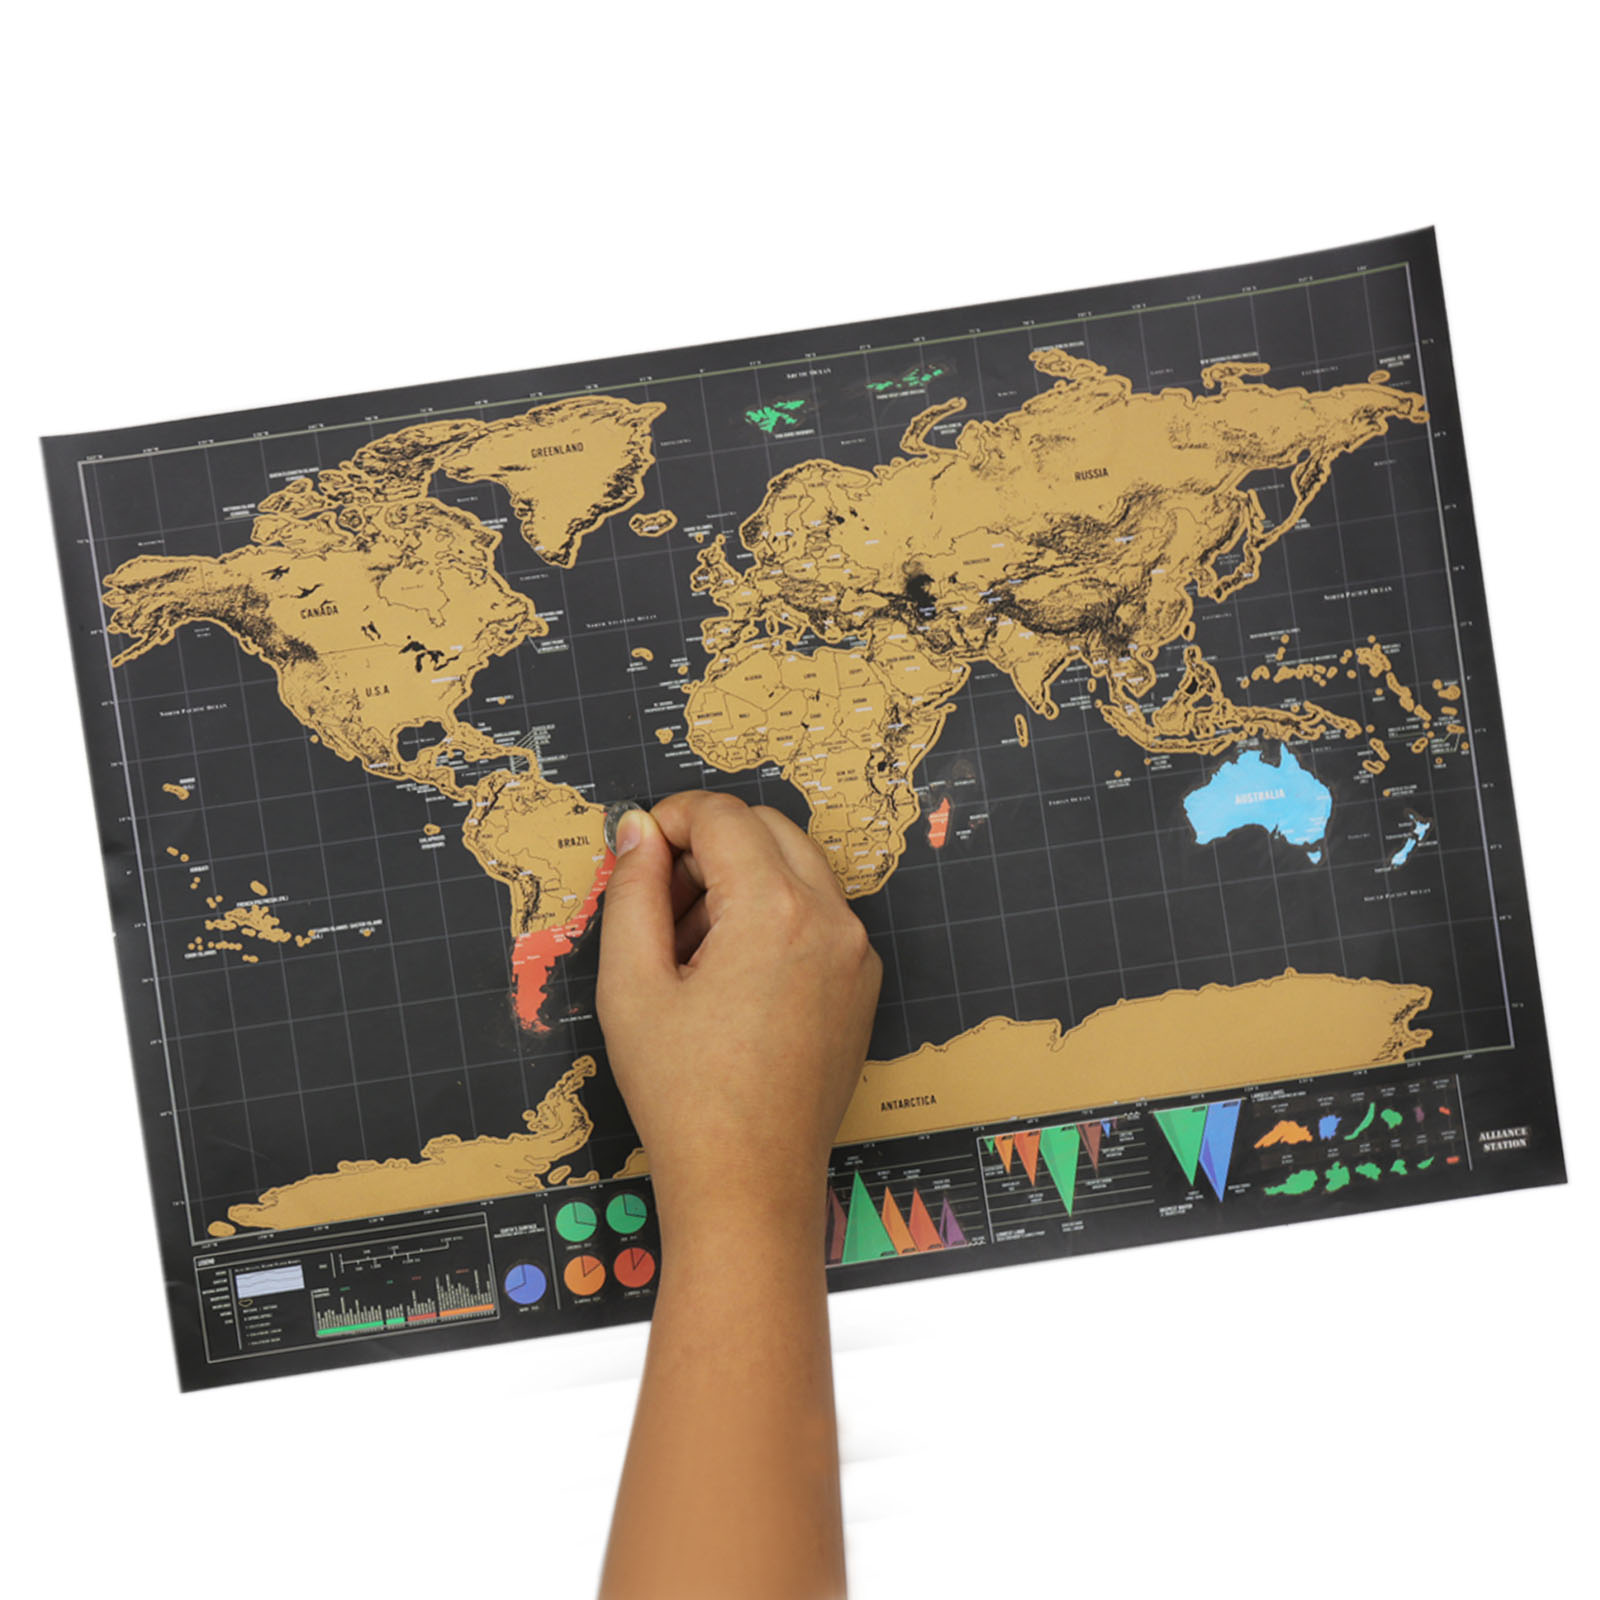 1 PCS Scratch Map New Design Black Deluxe Maps Travelwr Scratch Off World Best Gift for Education School Office Supplies image